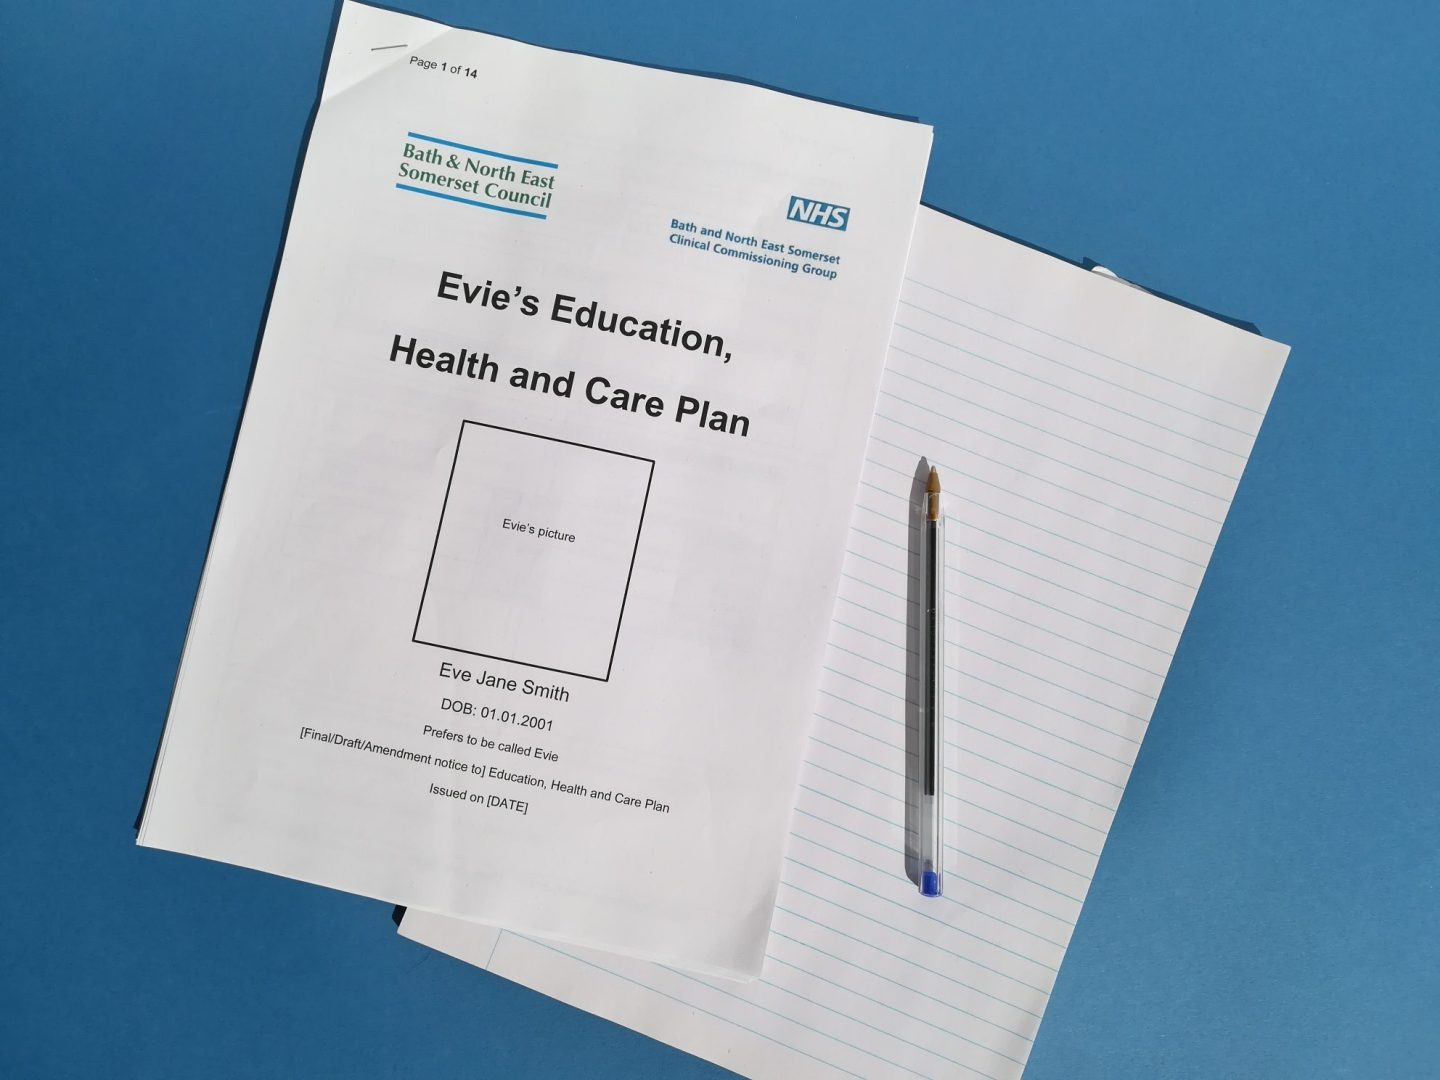 Education Health and Care Plan (EHCP), what is it all about?